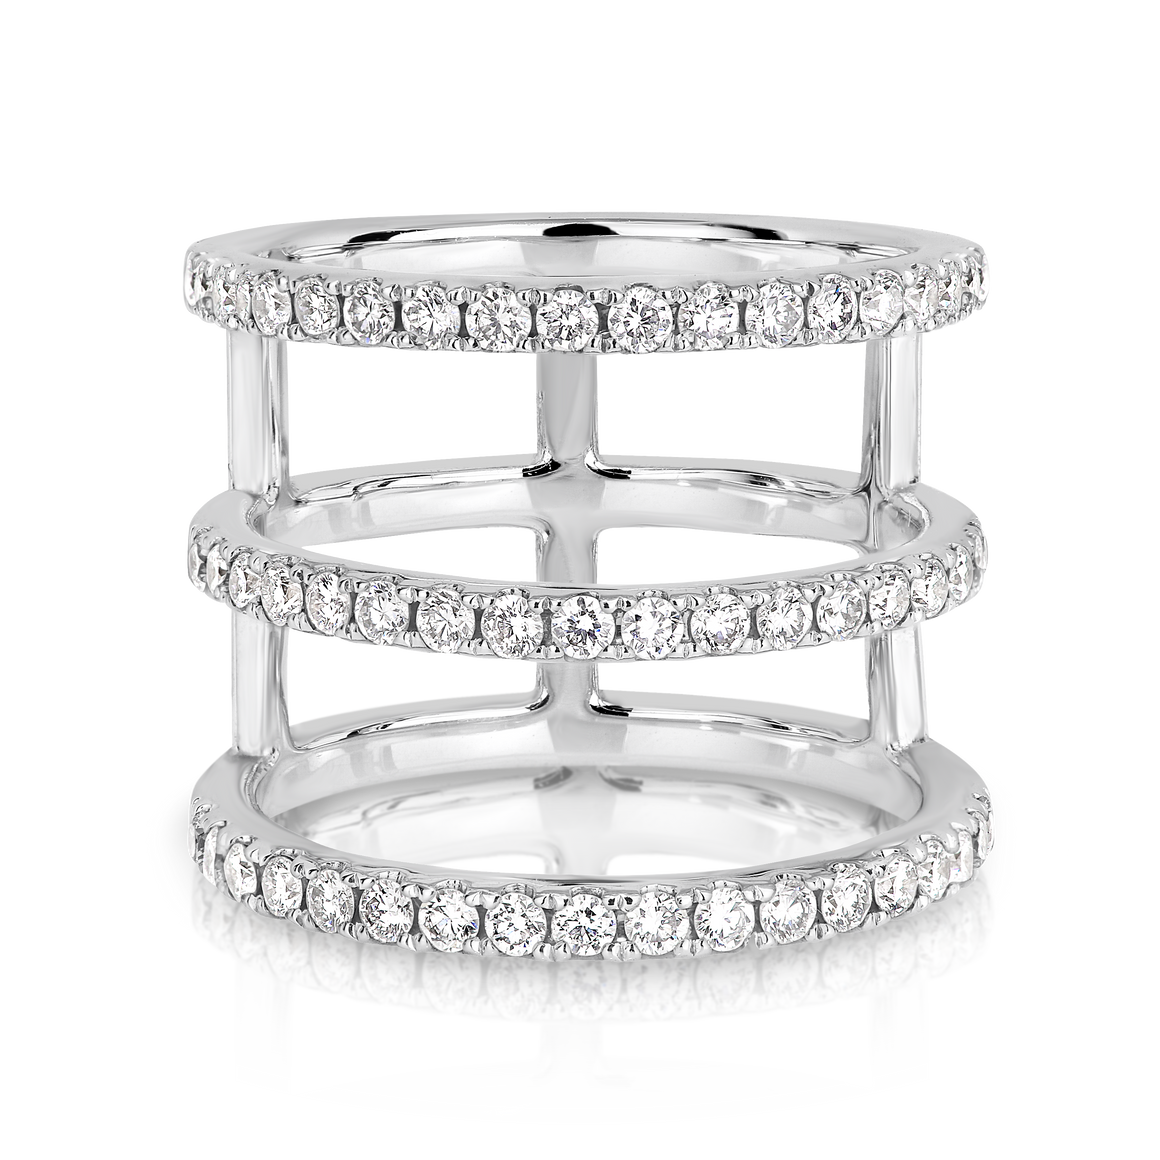 The 18ct White Gold  'Tryptique' Diamond Ring - Gemma Stone  ABN:51 621 127 866